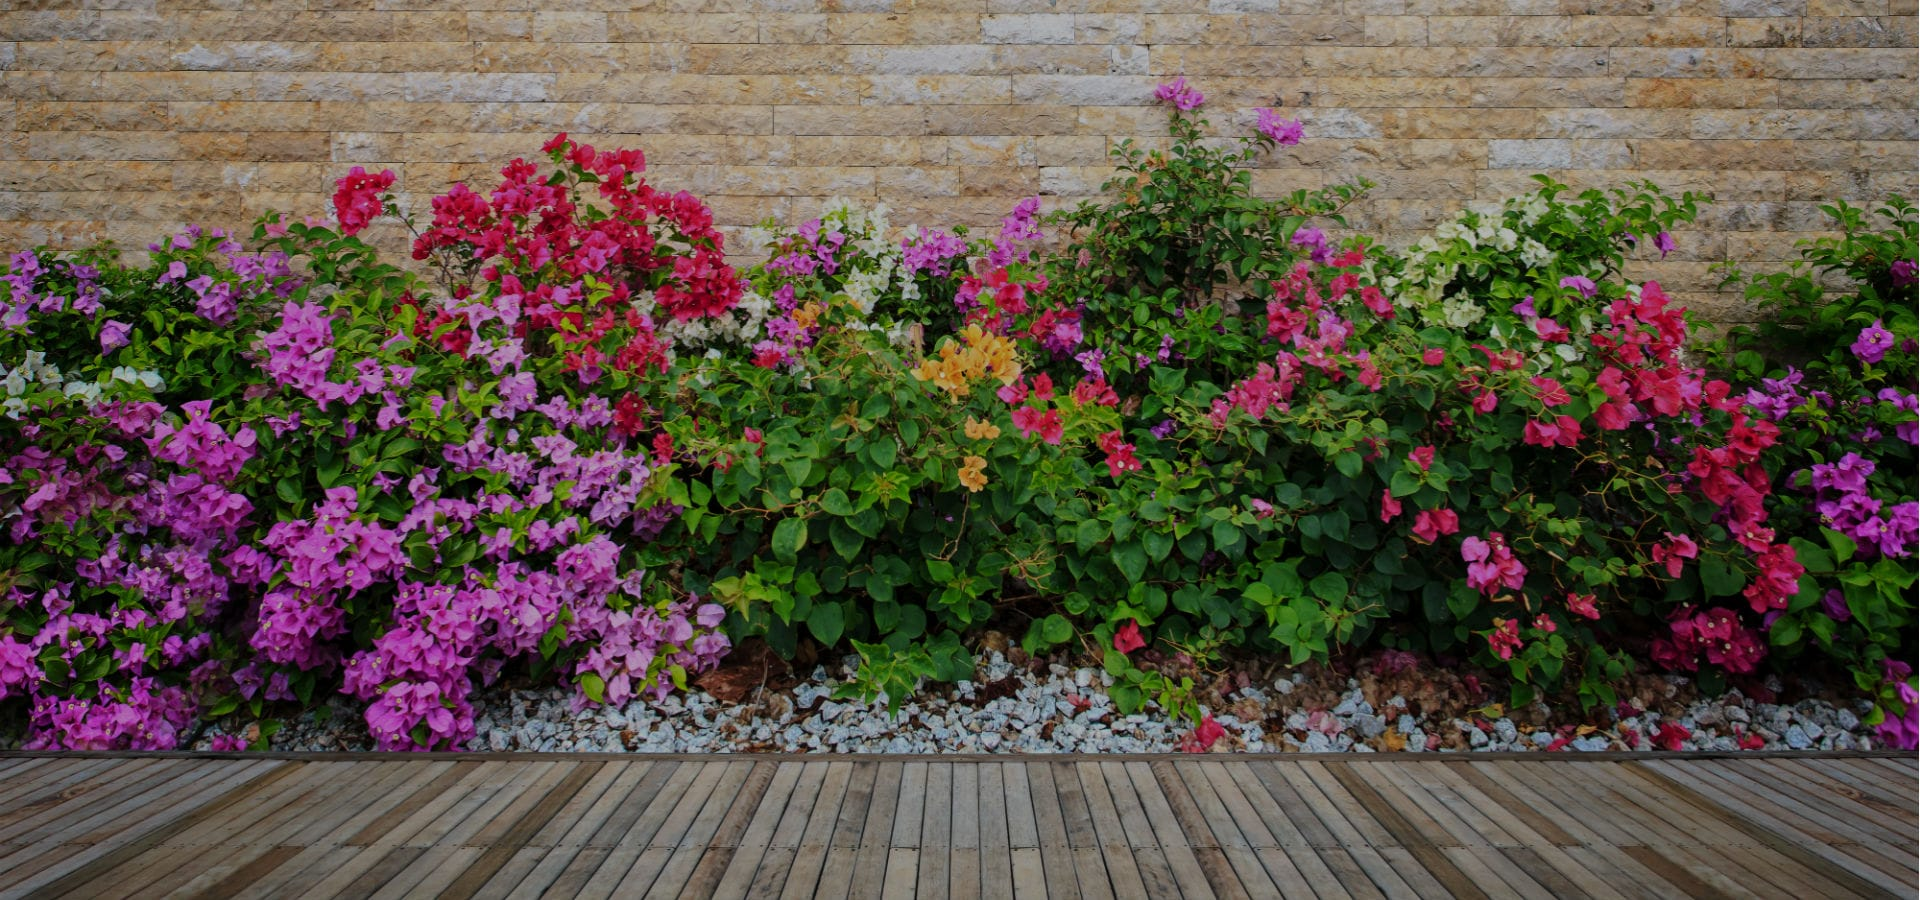 garden-decking-with-colourful-flower-beds